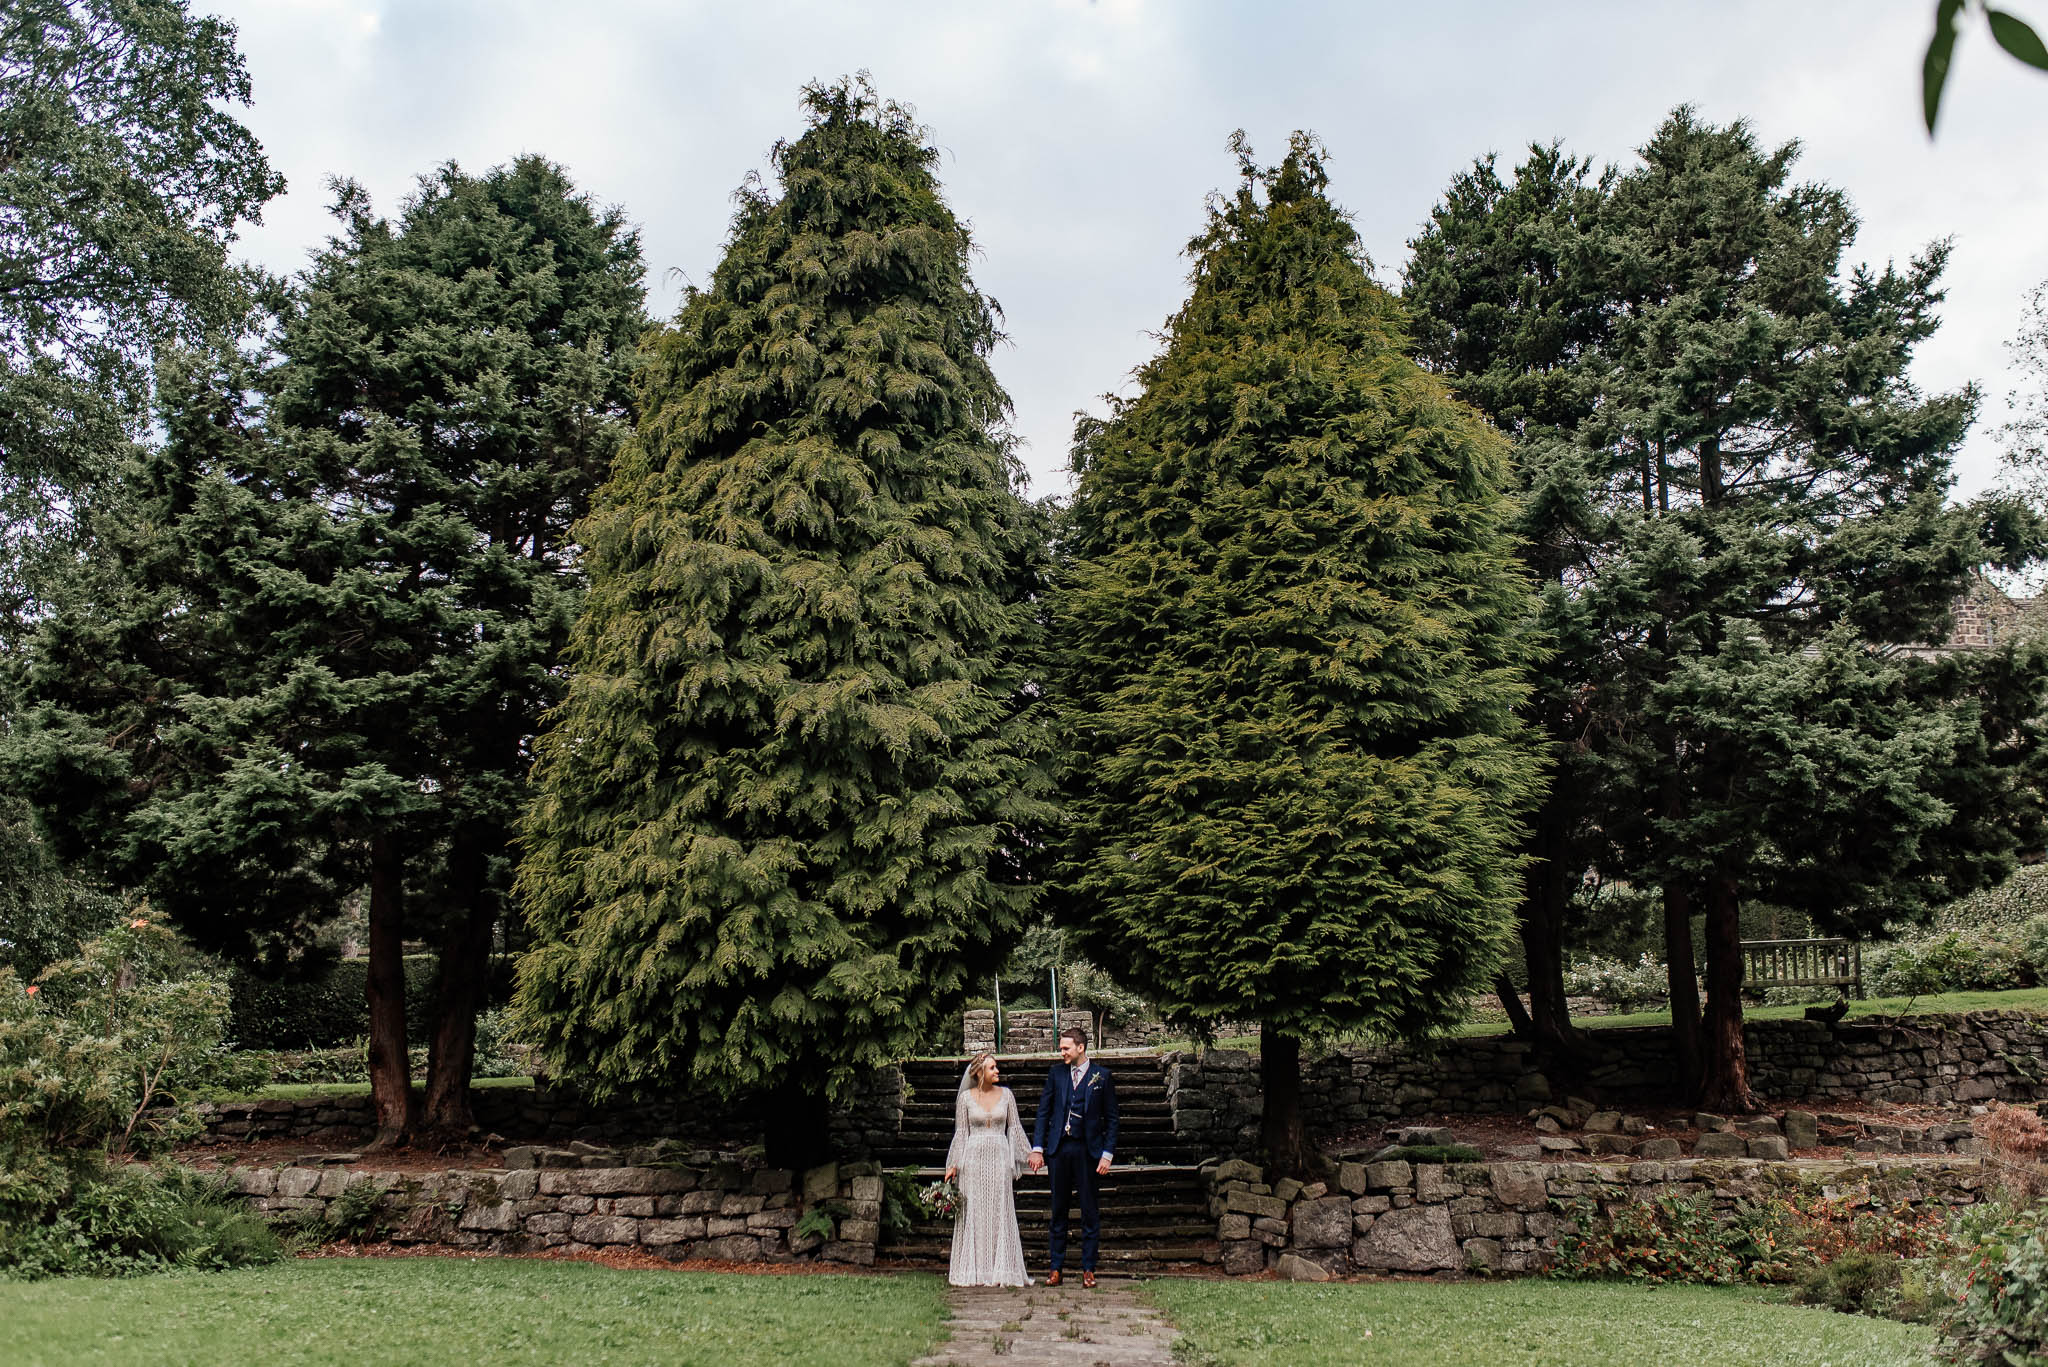 Bride and groom portraits on a wedding day at Whirlowbrook Hall in Sheffield